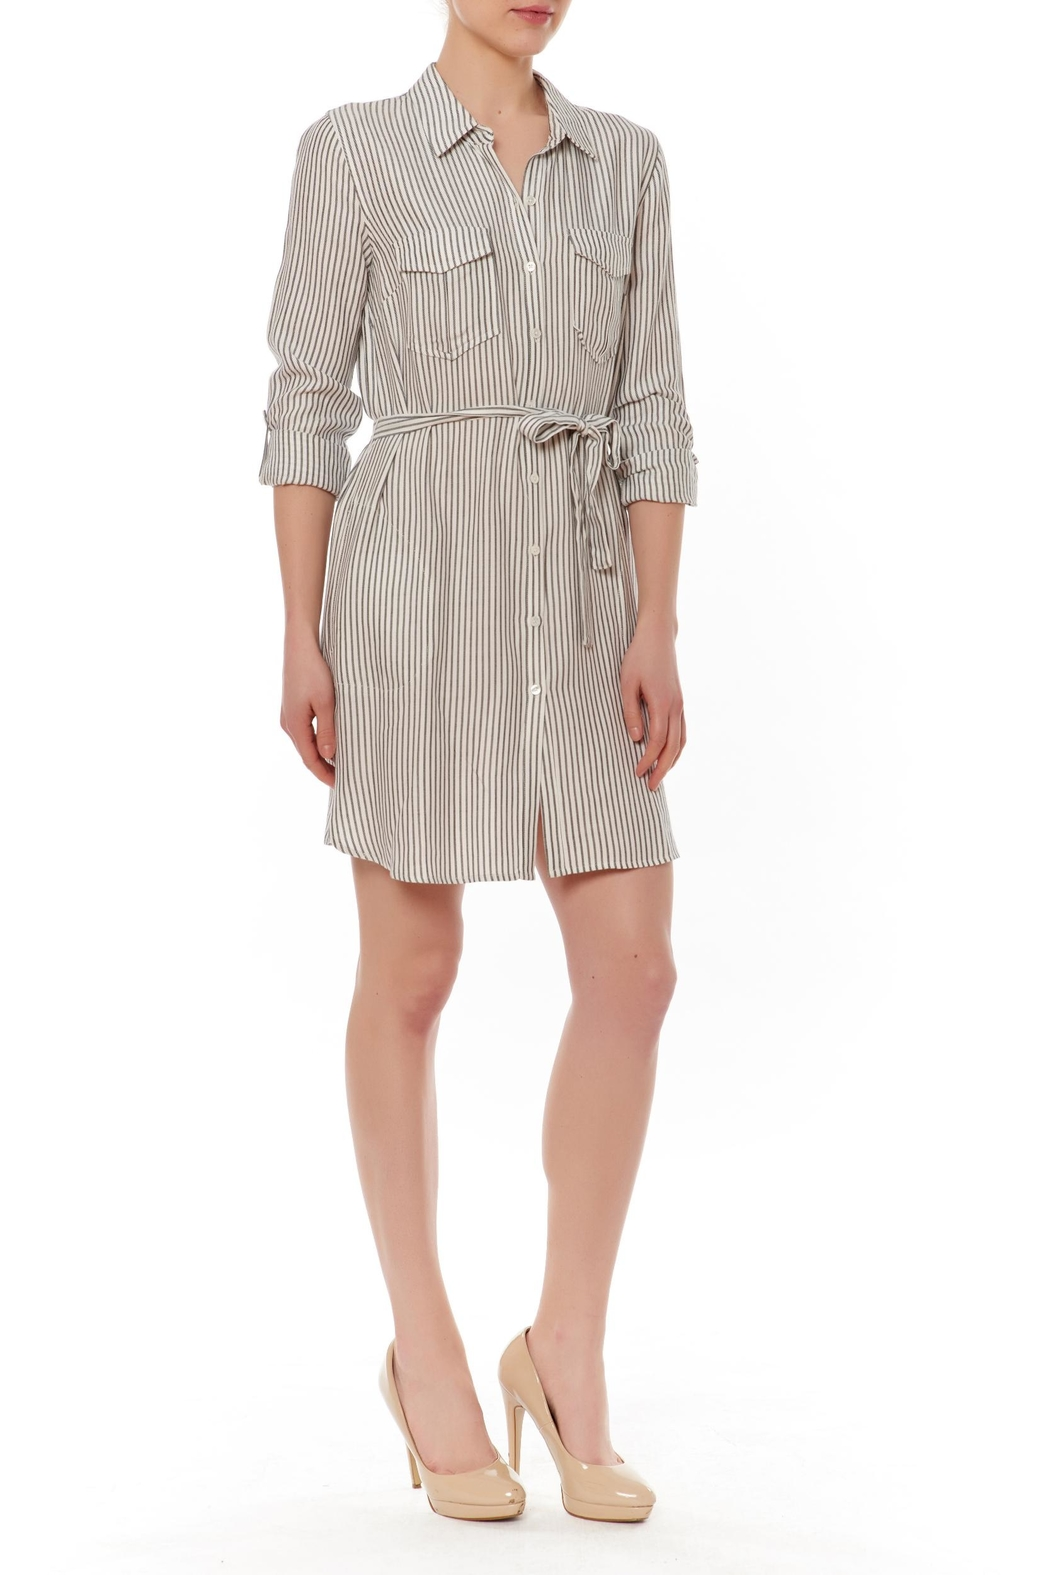 Soft Joie Wila B Dress - Front Cropped Image